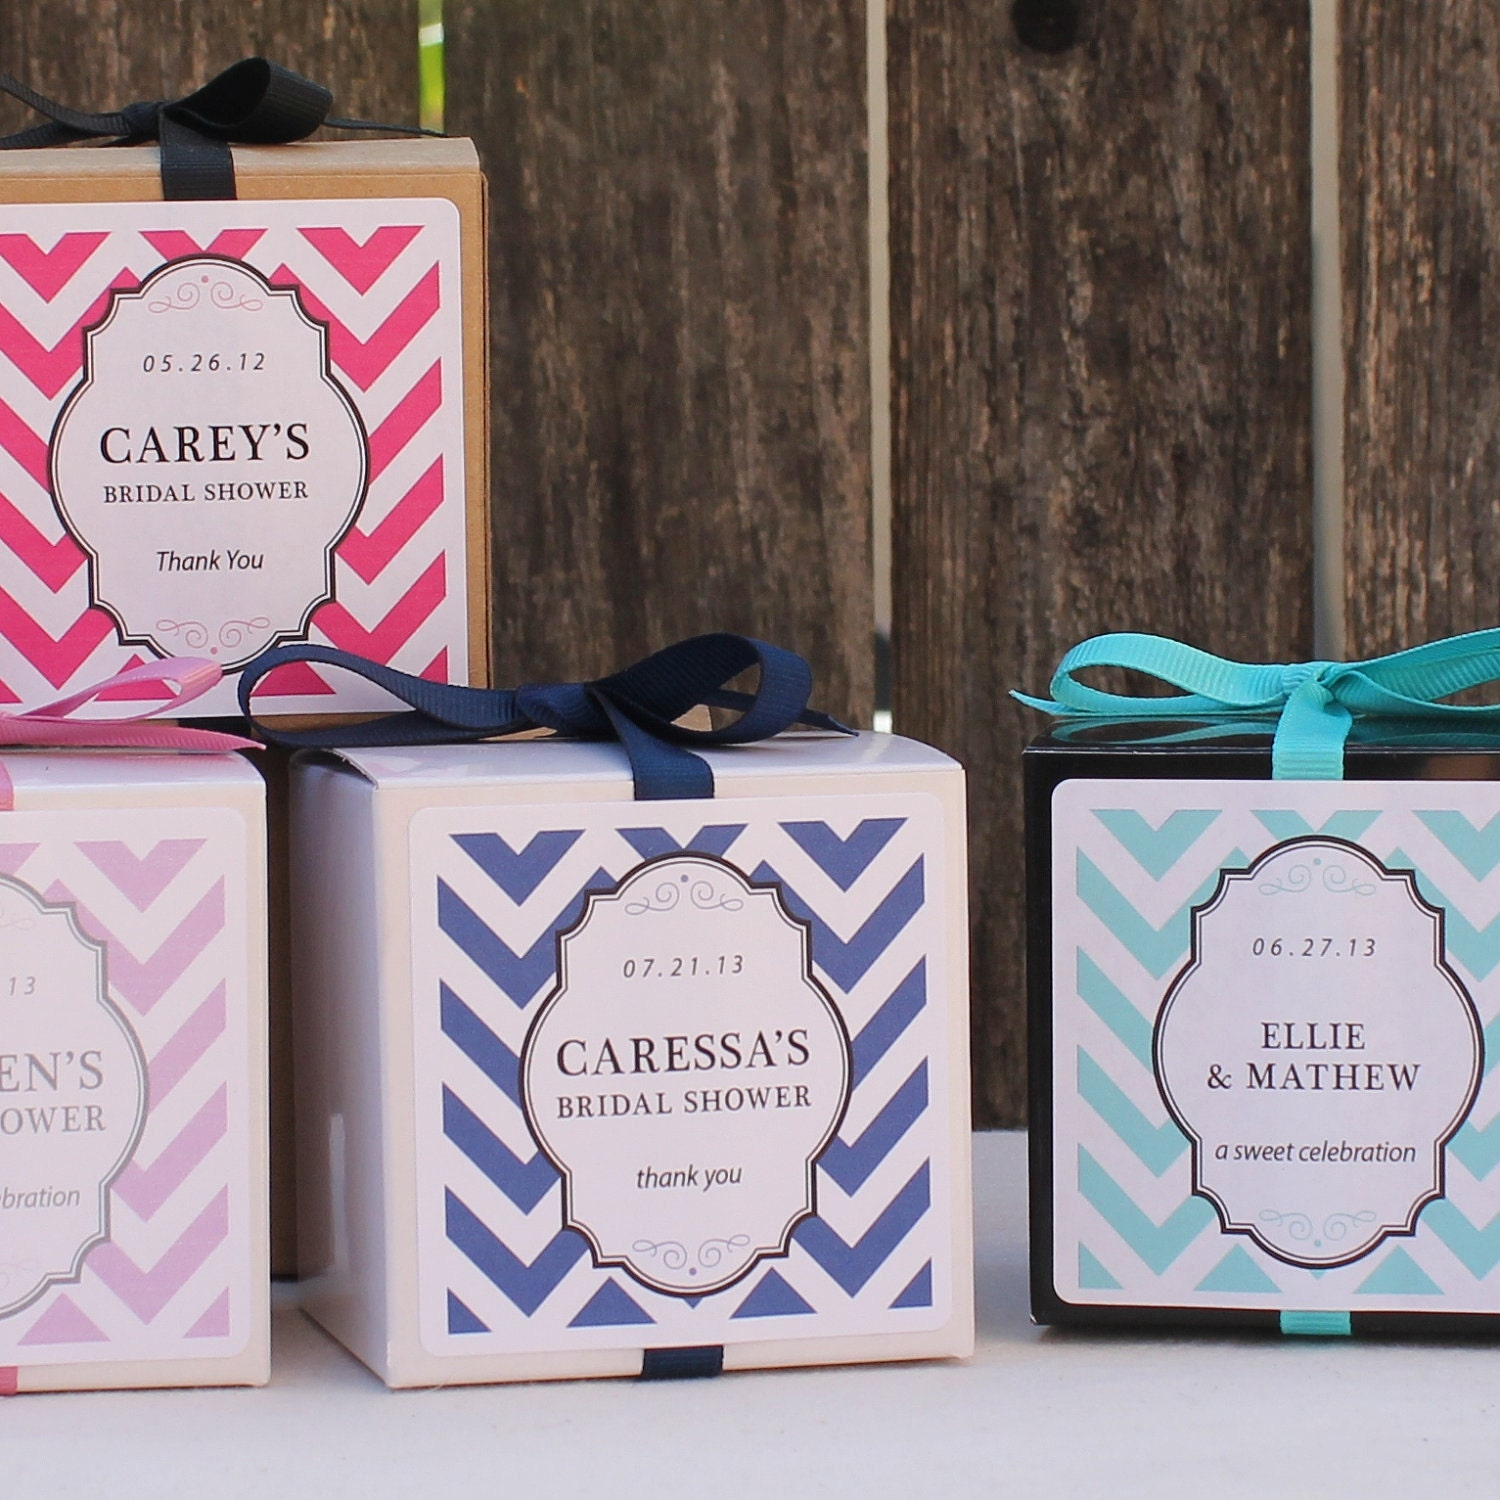 Wedding Personalized Favors 18 chevron design personalized favor boxes any color